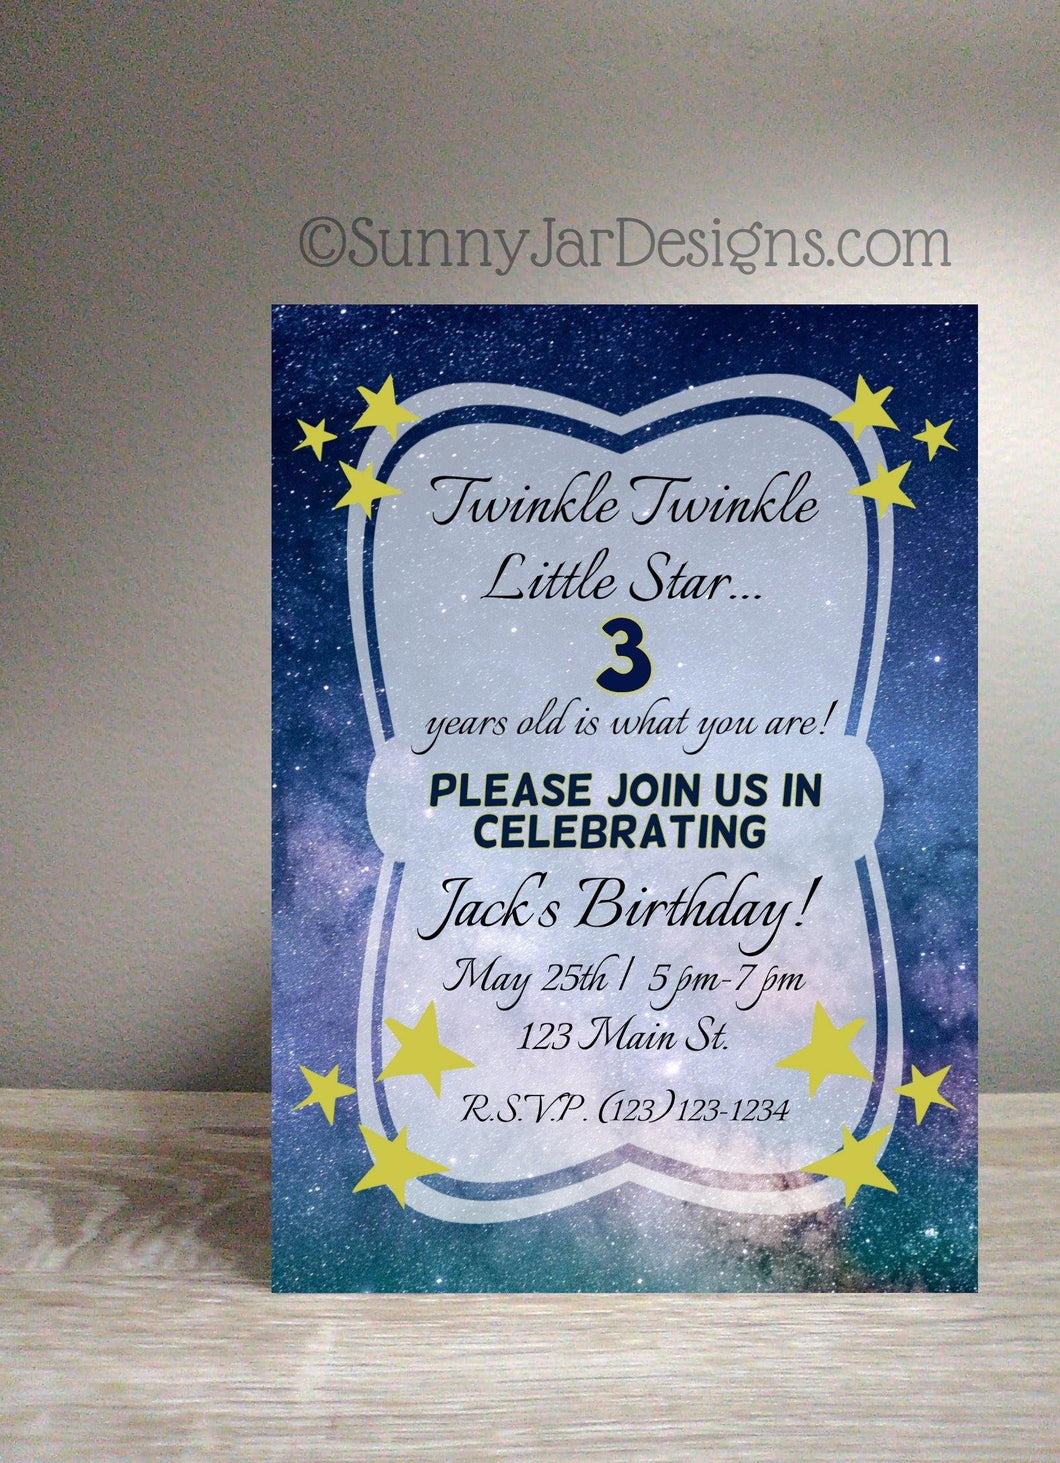 Twinkle Little Star Birthday Party Invitation-Sunny Jar Designs